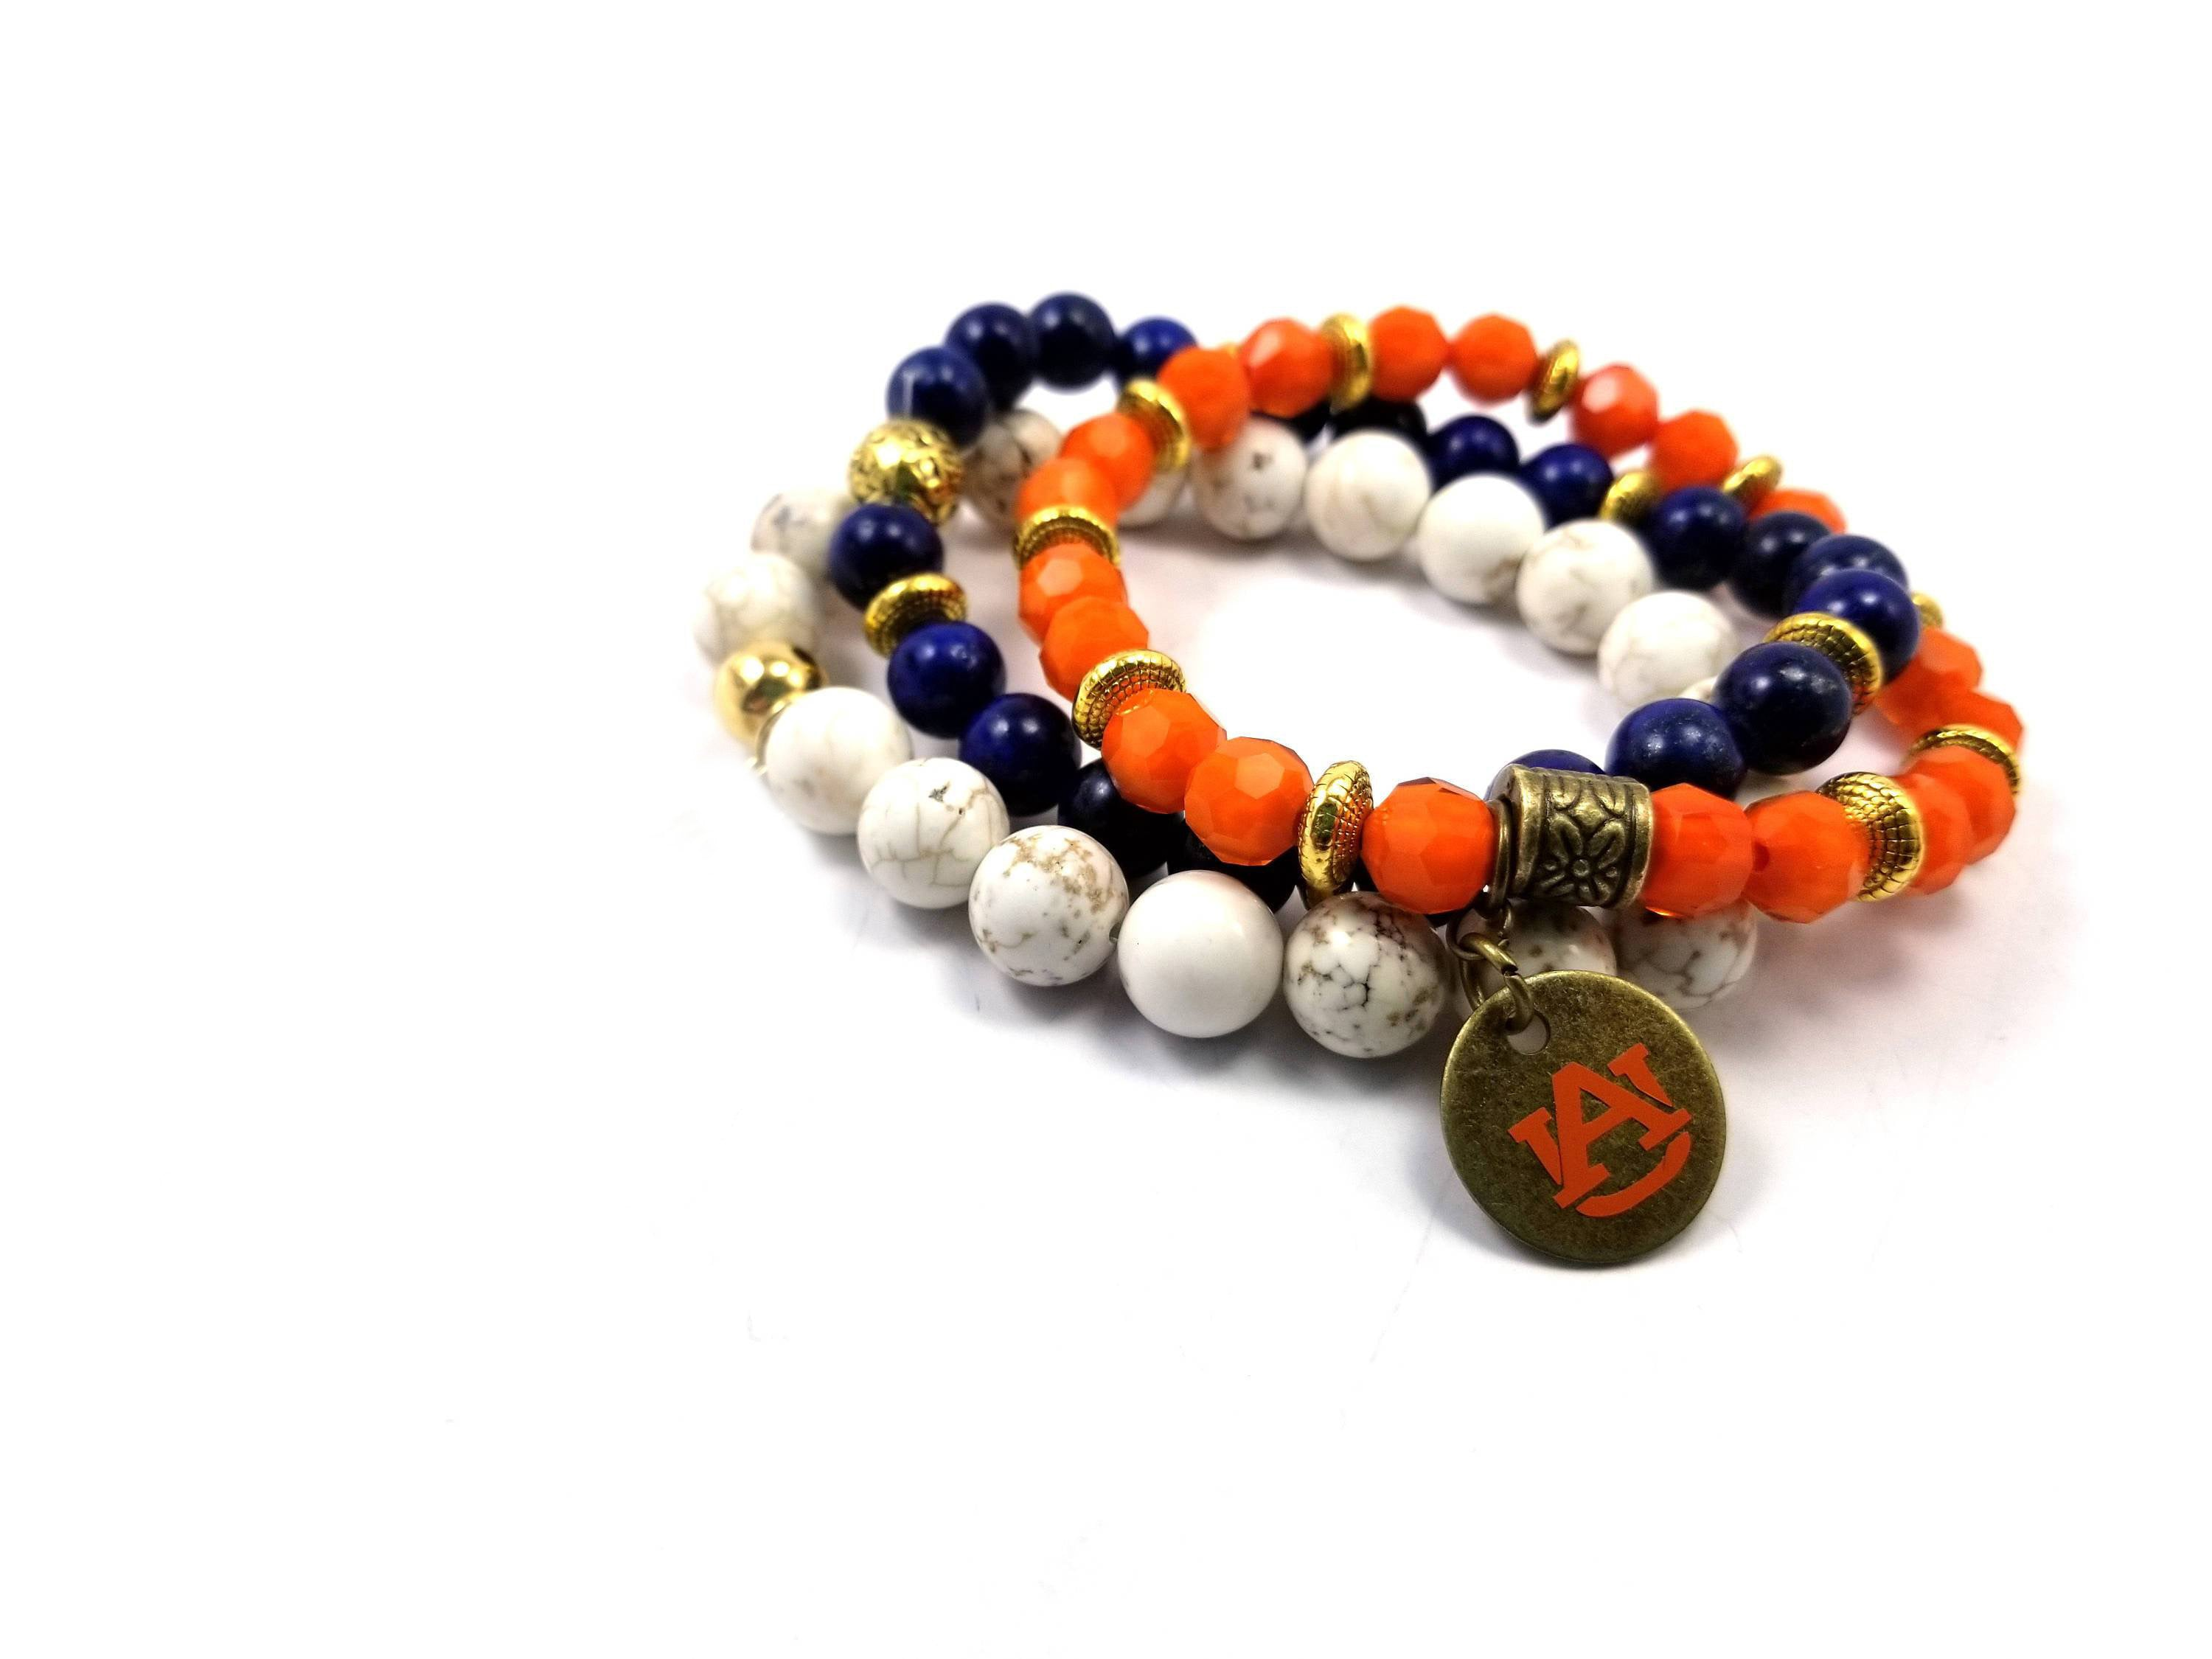 Auburn beaded bracelet , Auburn bracelet, Auburn game day jewelry, AU Tigers bracelets, AU orange bracelet